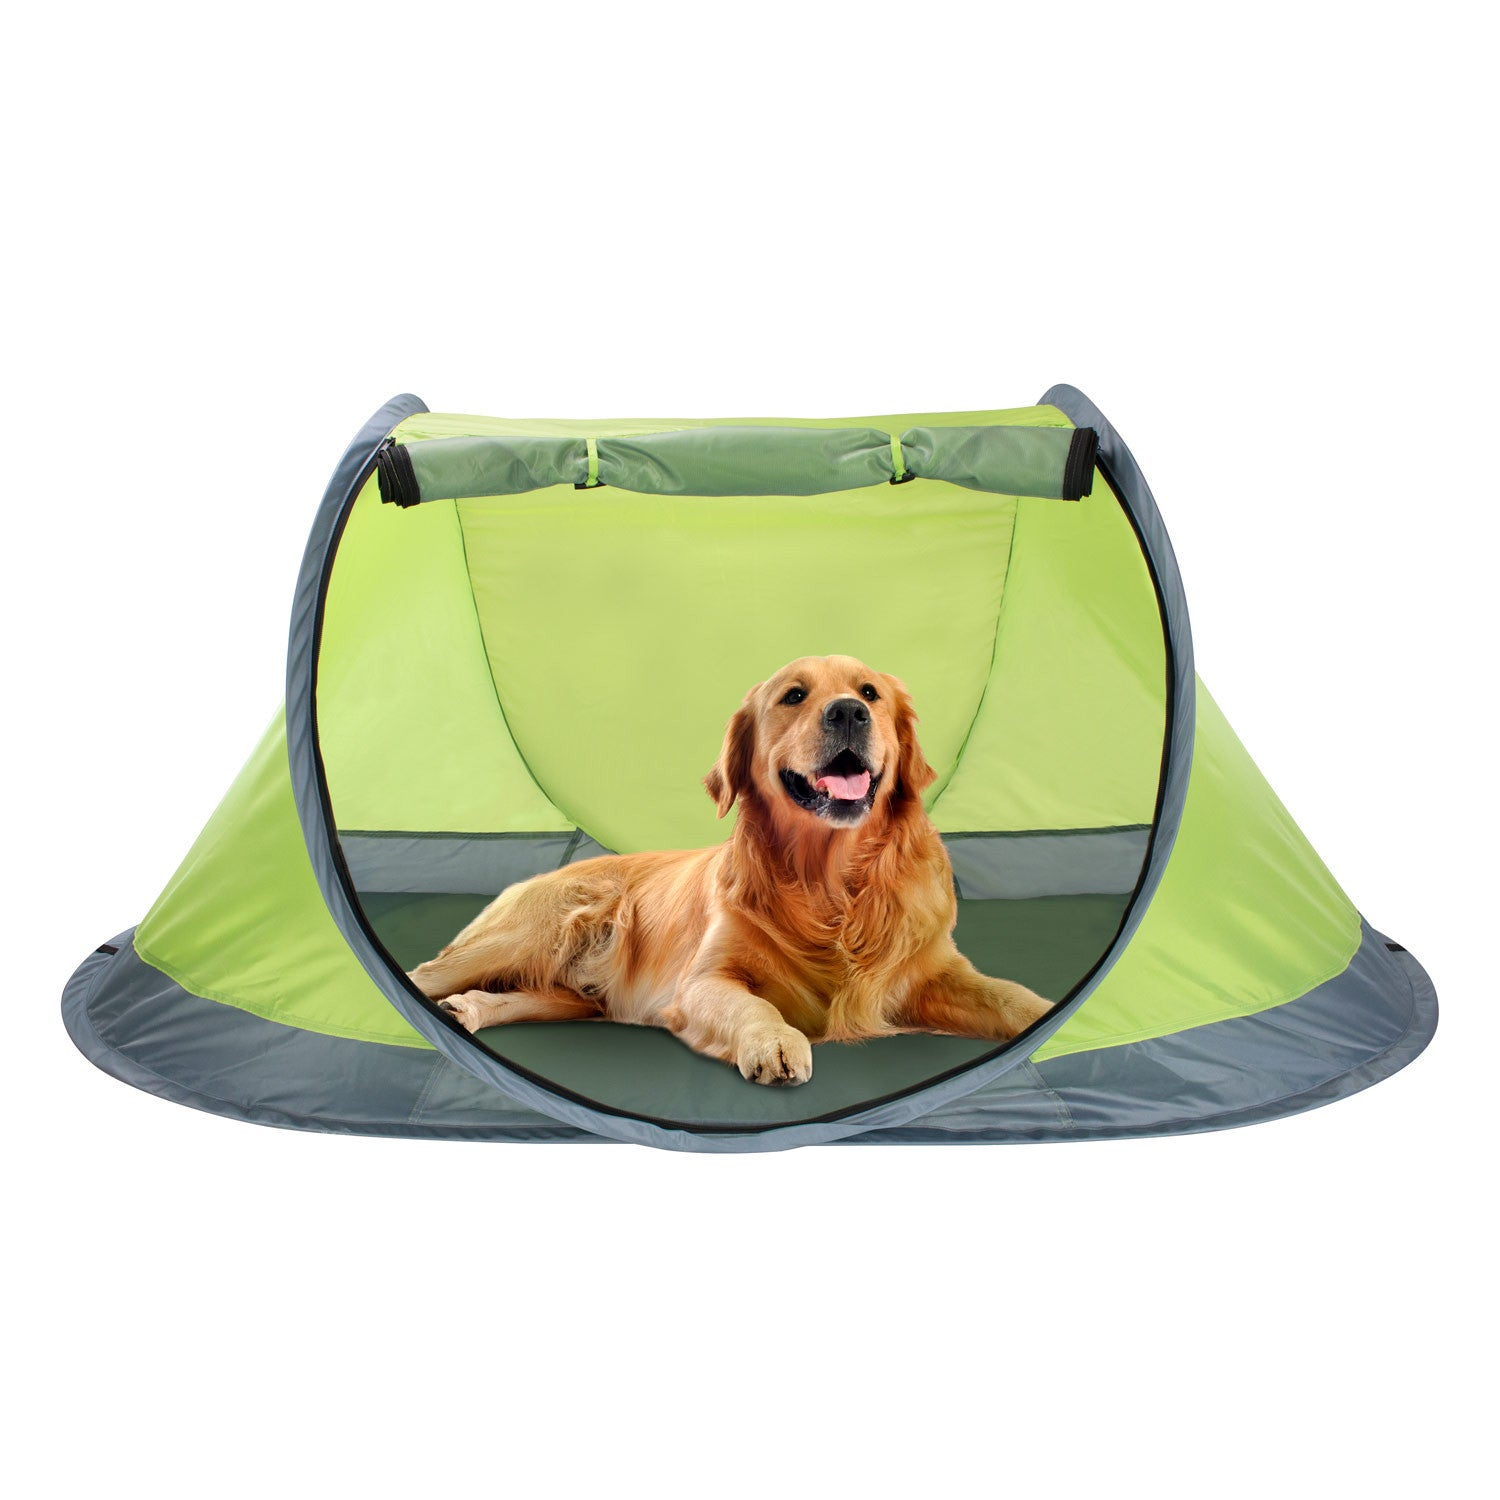 Outdoor Pop Up Pet Tent  sc 1 st  Winterial.com & Pop-up Pet Tent | Camping or Beach | Foam Sleeping Pad - Winterial.com